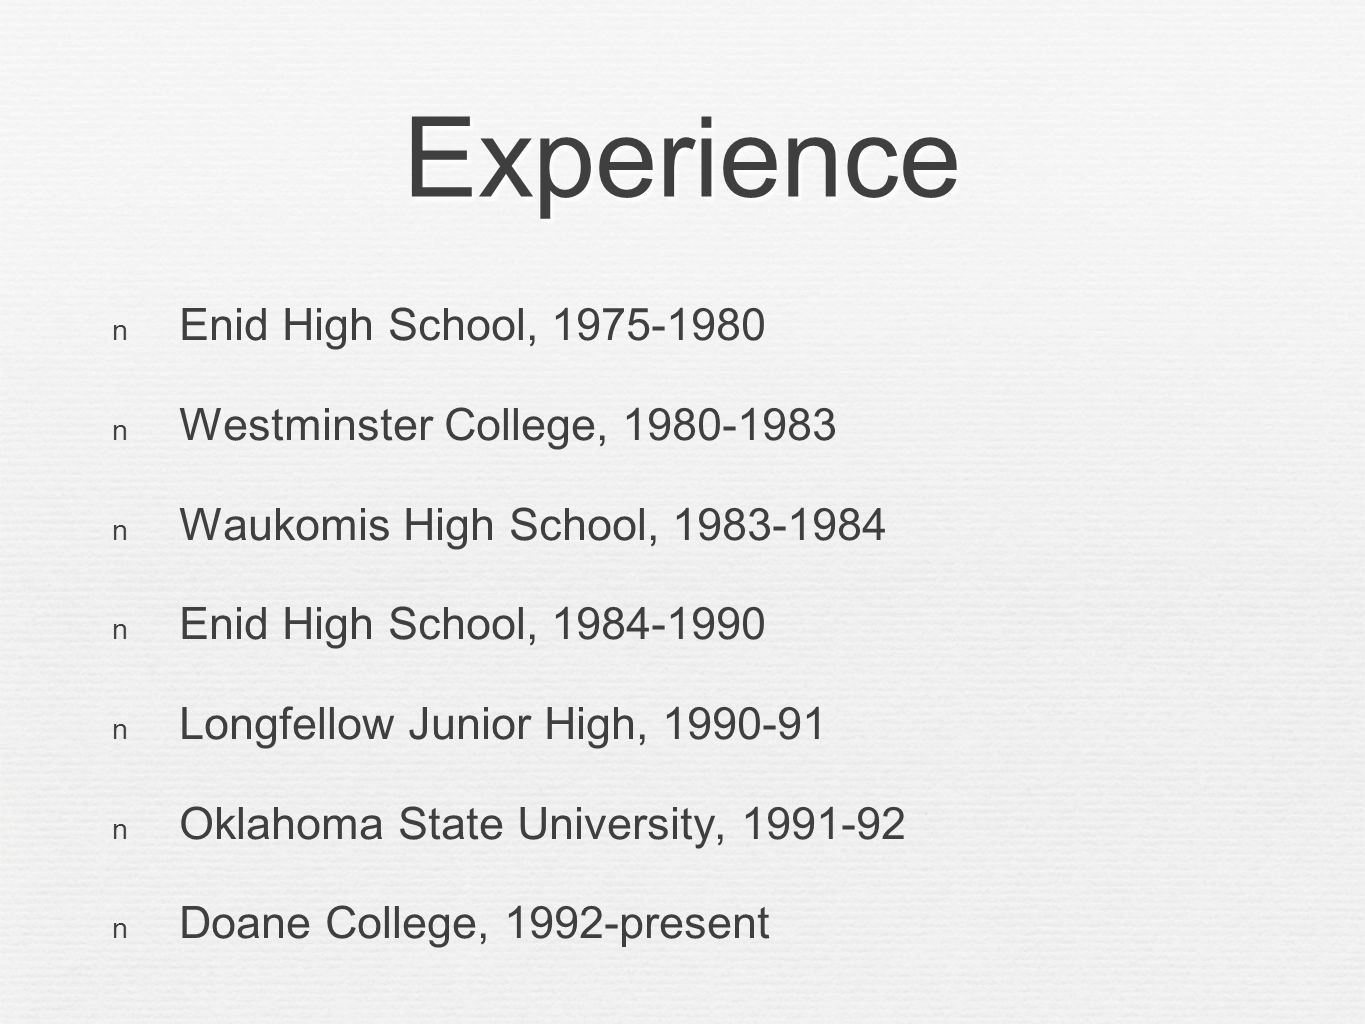 Experience Enid High School, 1975-1980 Westminster College, 1980-1983 Waukomis High School, 1983-1984 Enid High School, 1984-1990 Longfellow Junior High, 1990-91 Oklahoma State University, 1991-92 Doane College, 1992-present